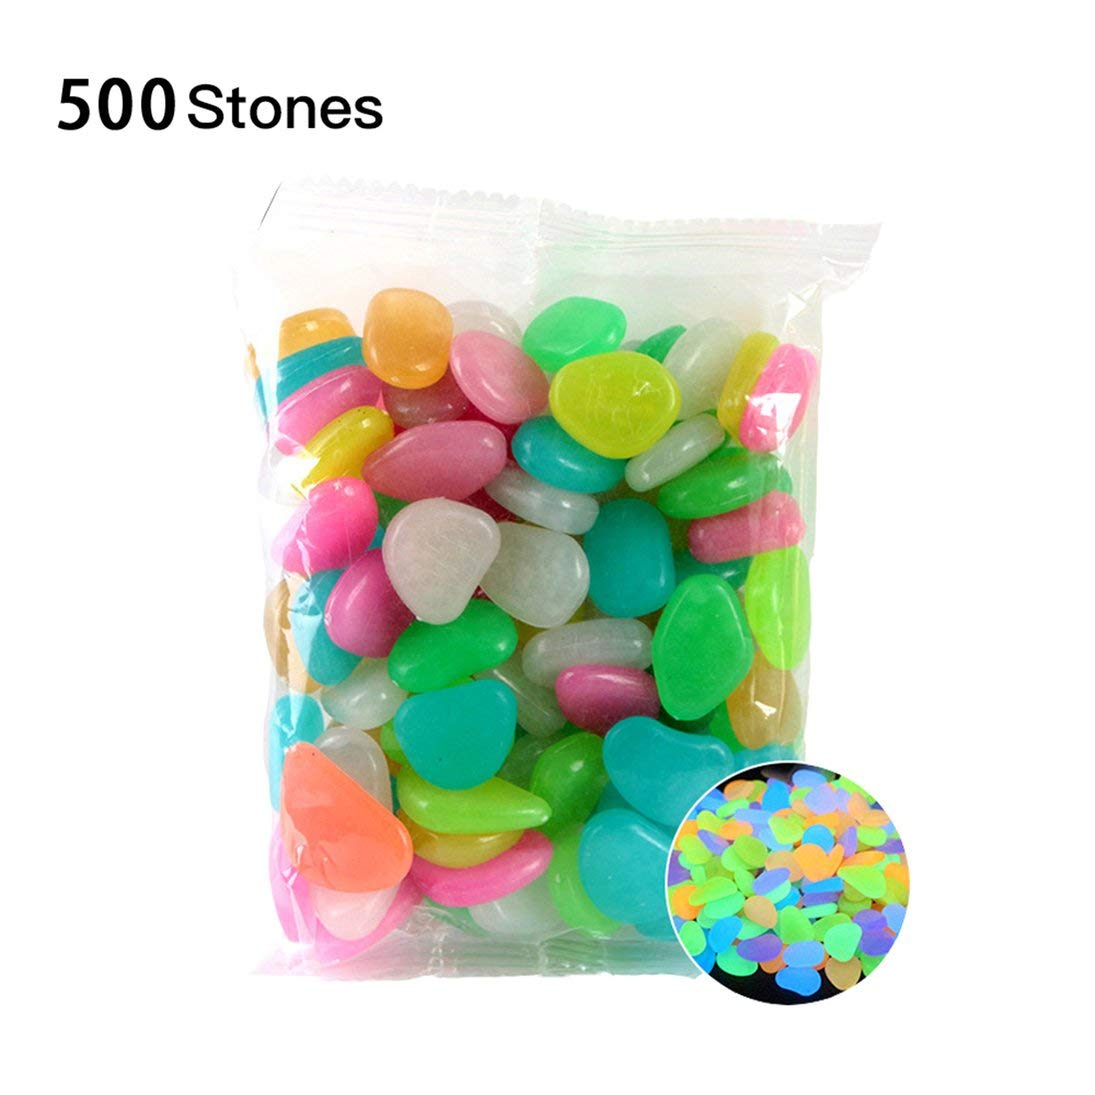 Baynne-US Glowing Stones Luminous Stones 500PCS Glow in The Dark Luminous Pebbles Compatible for Backyard Walkways Path Gardens Lawns Driveways Fish Tank Aquarium Flower Beds by Baynne-US